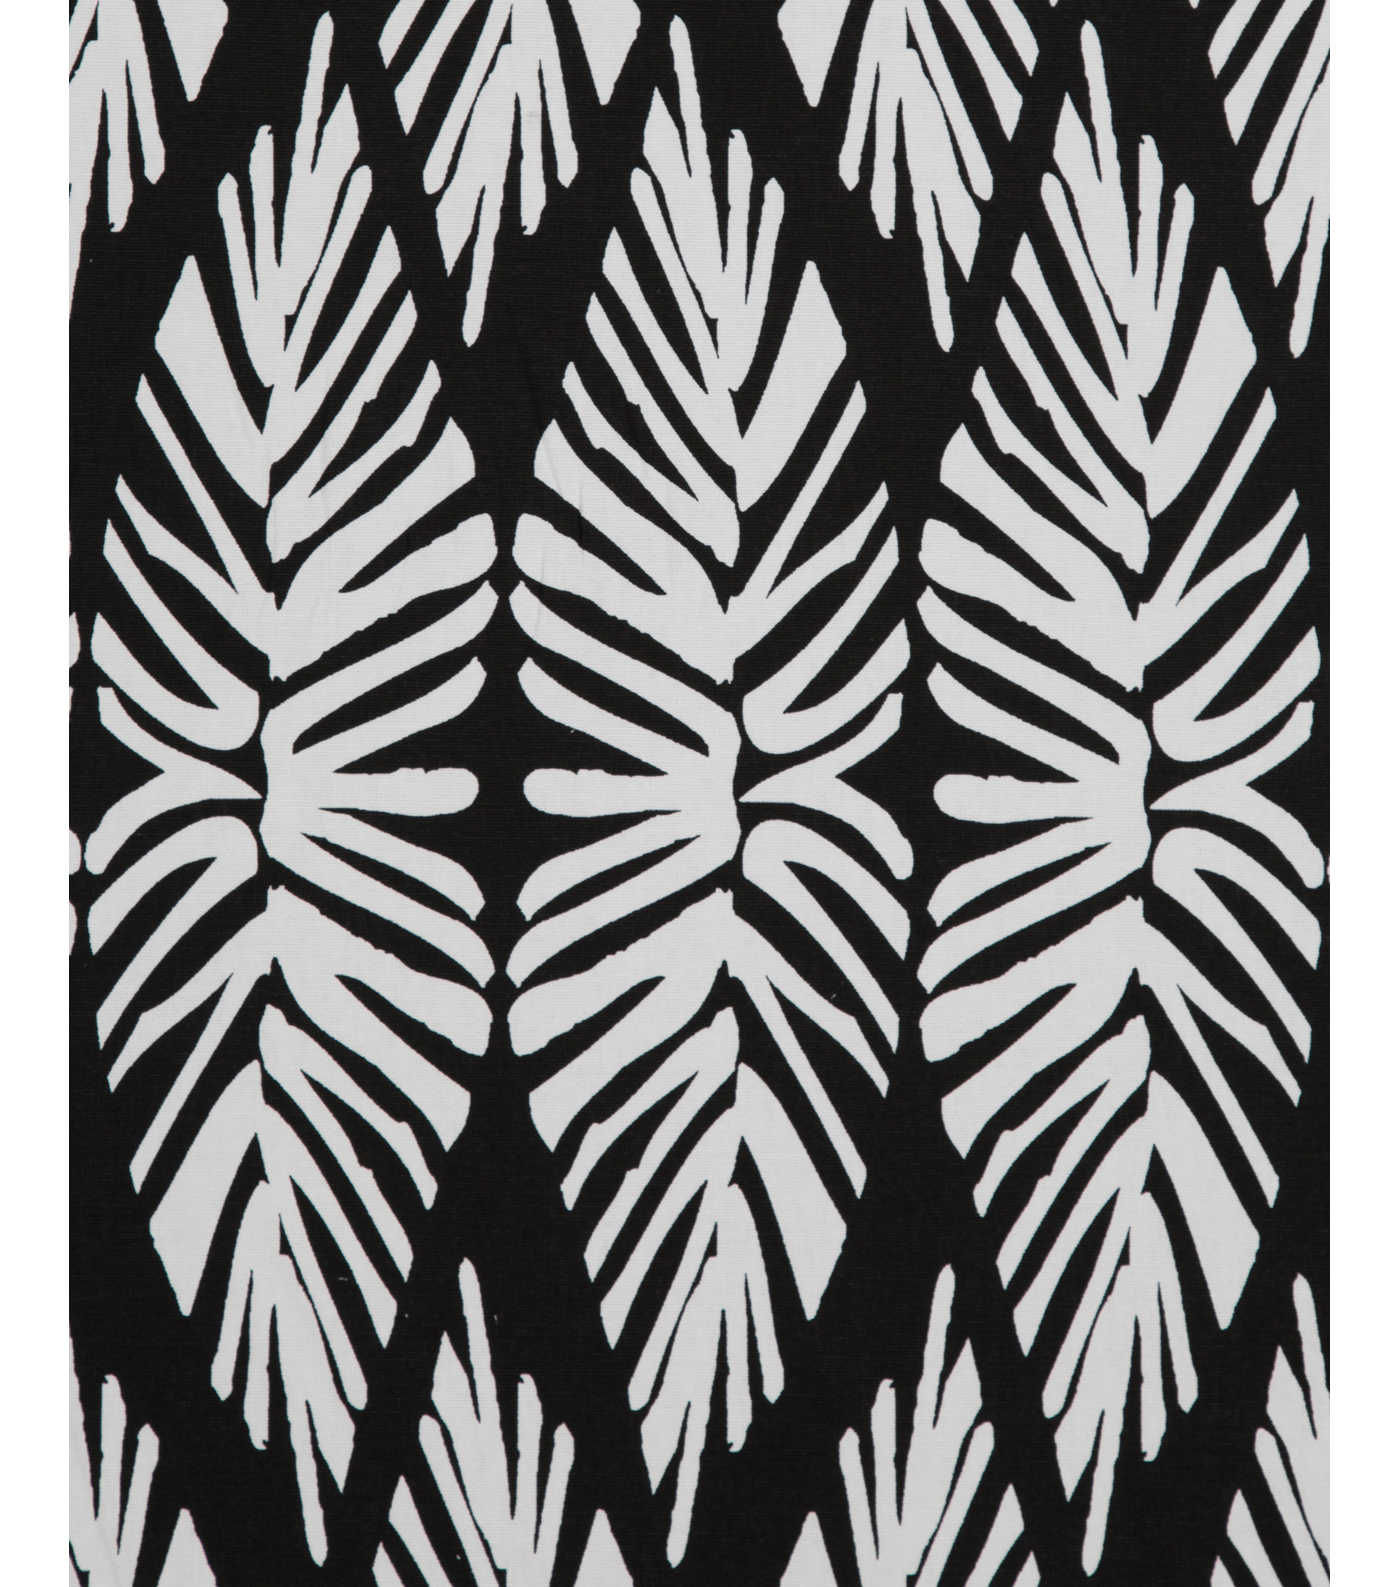 Nate Berkus Home Decor Fabric-Iko Paramount Onyx